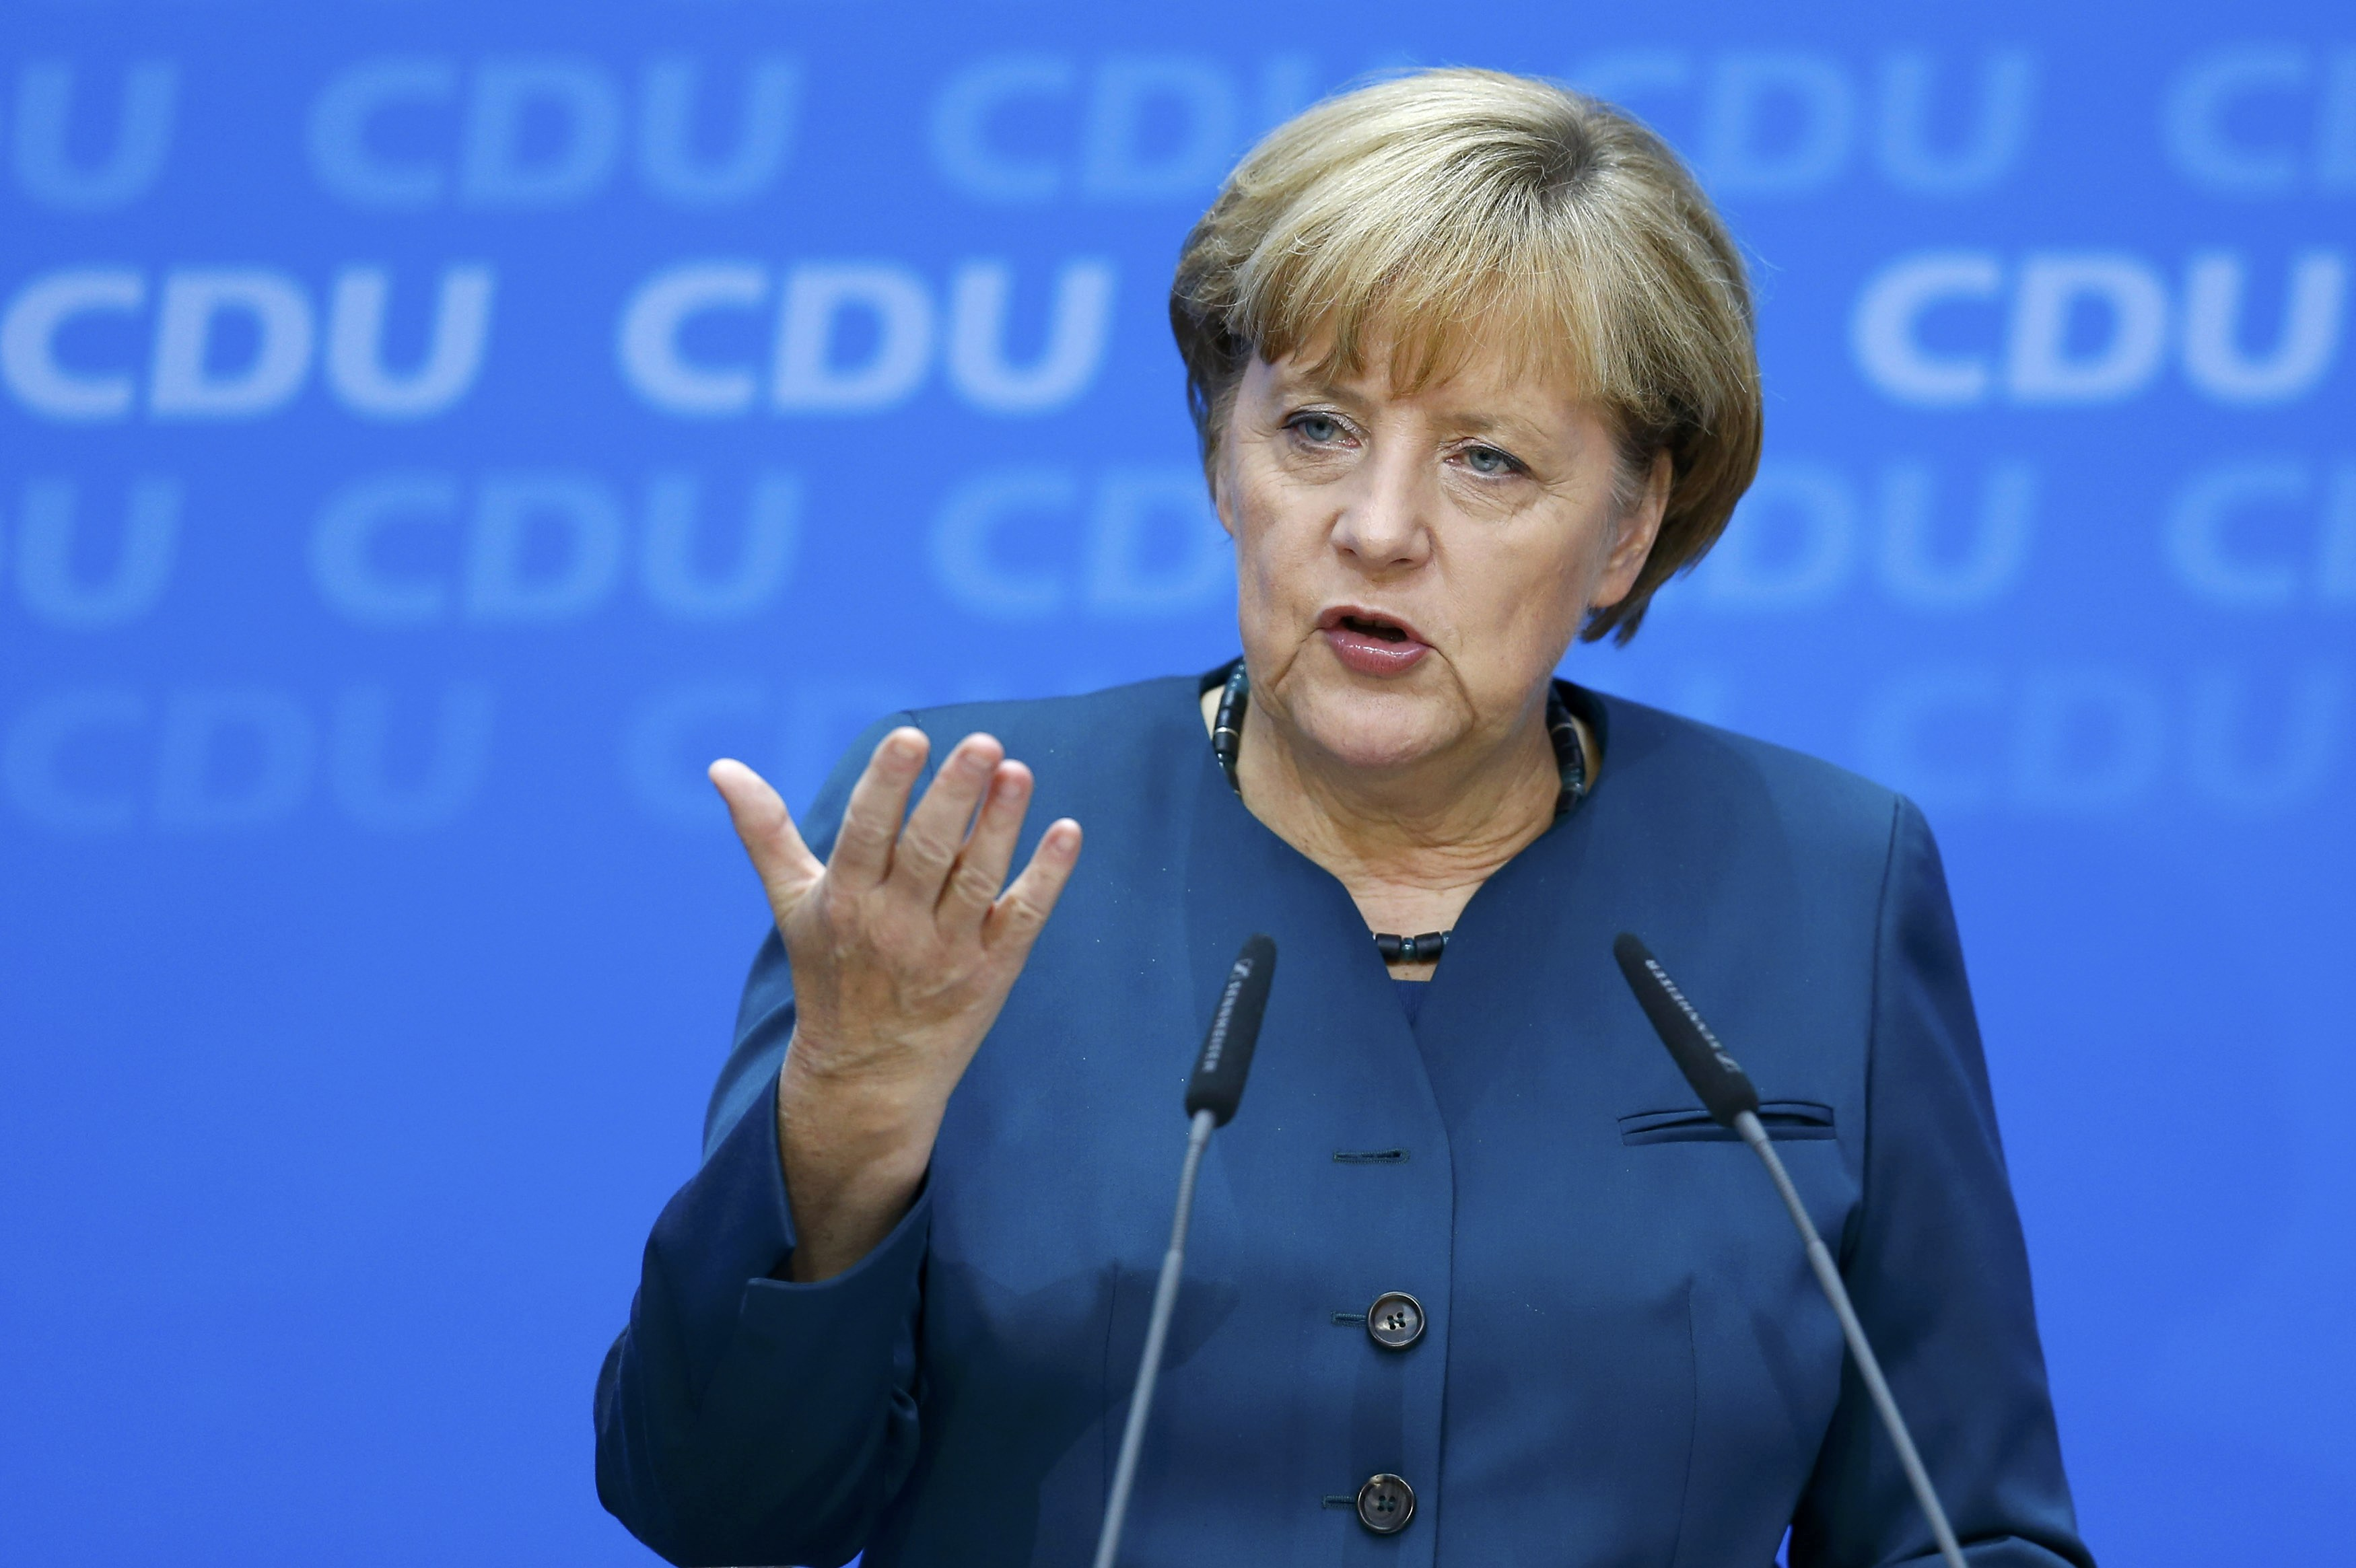 Merkel returns to the issue of Greek-Turkish cooperation in the Aegean